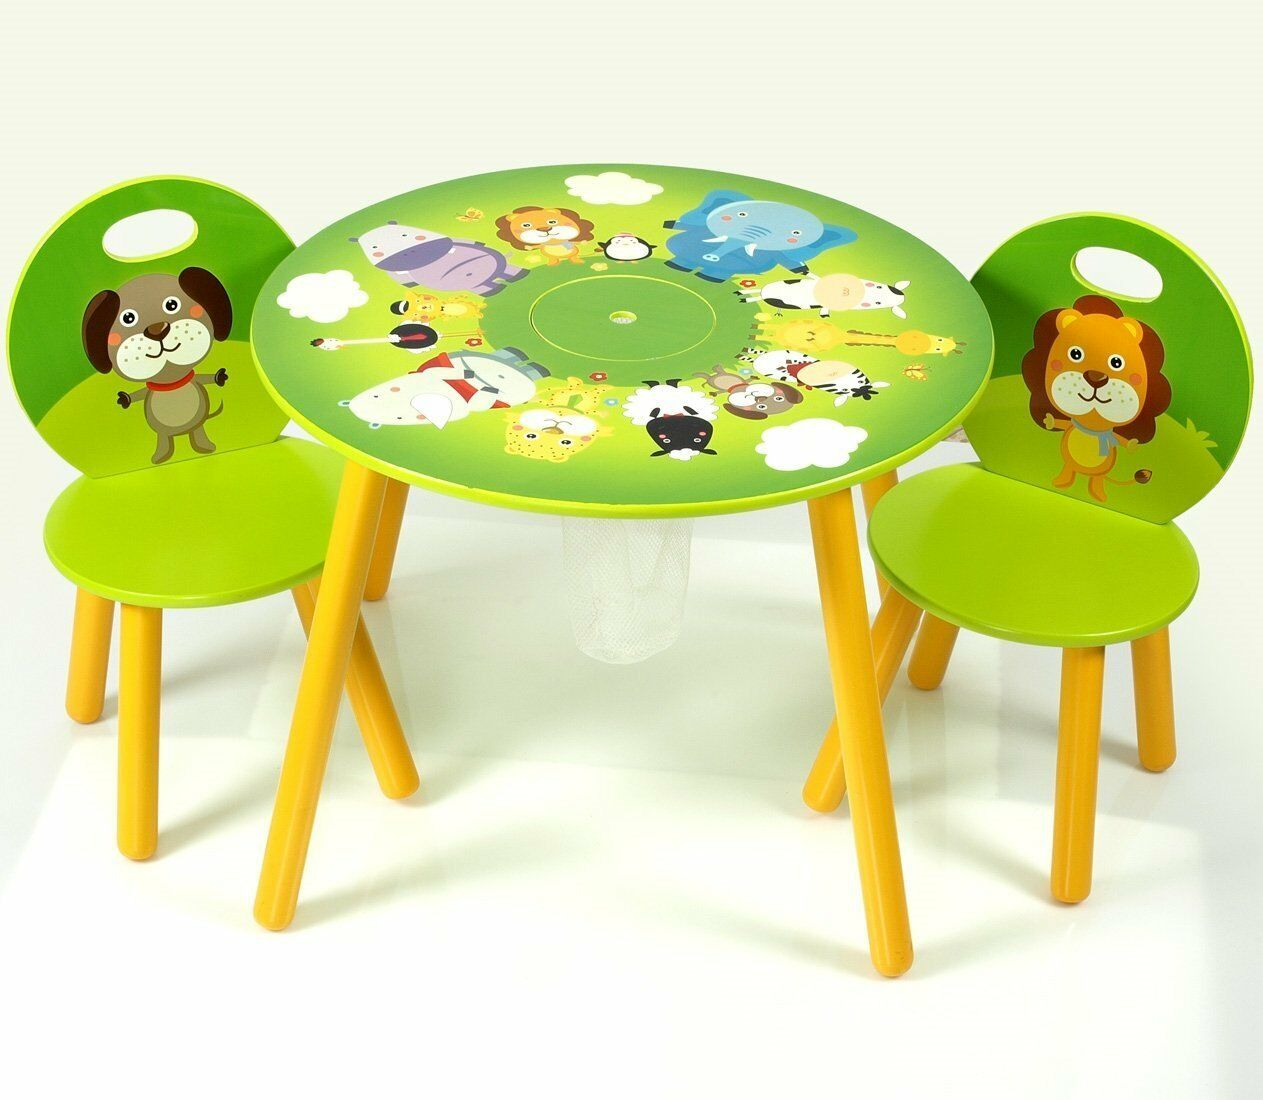 Wonderful Wooden Kids Table and Chair Set 1263 x 1100 · 117 kB · jpeg